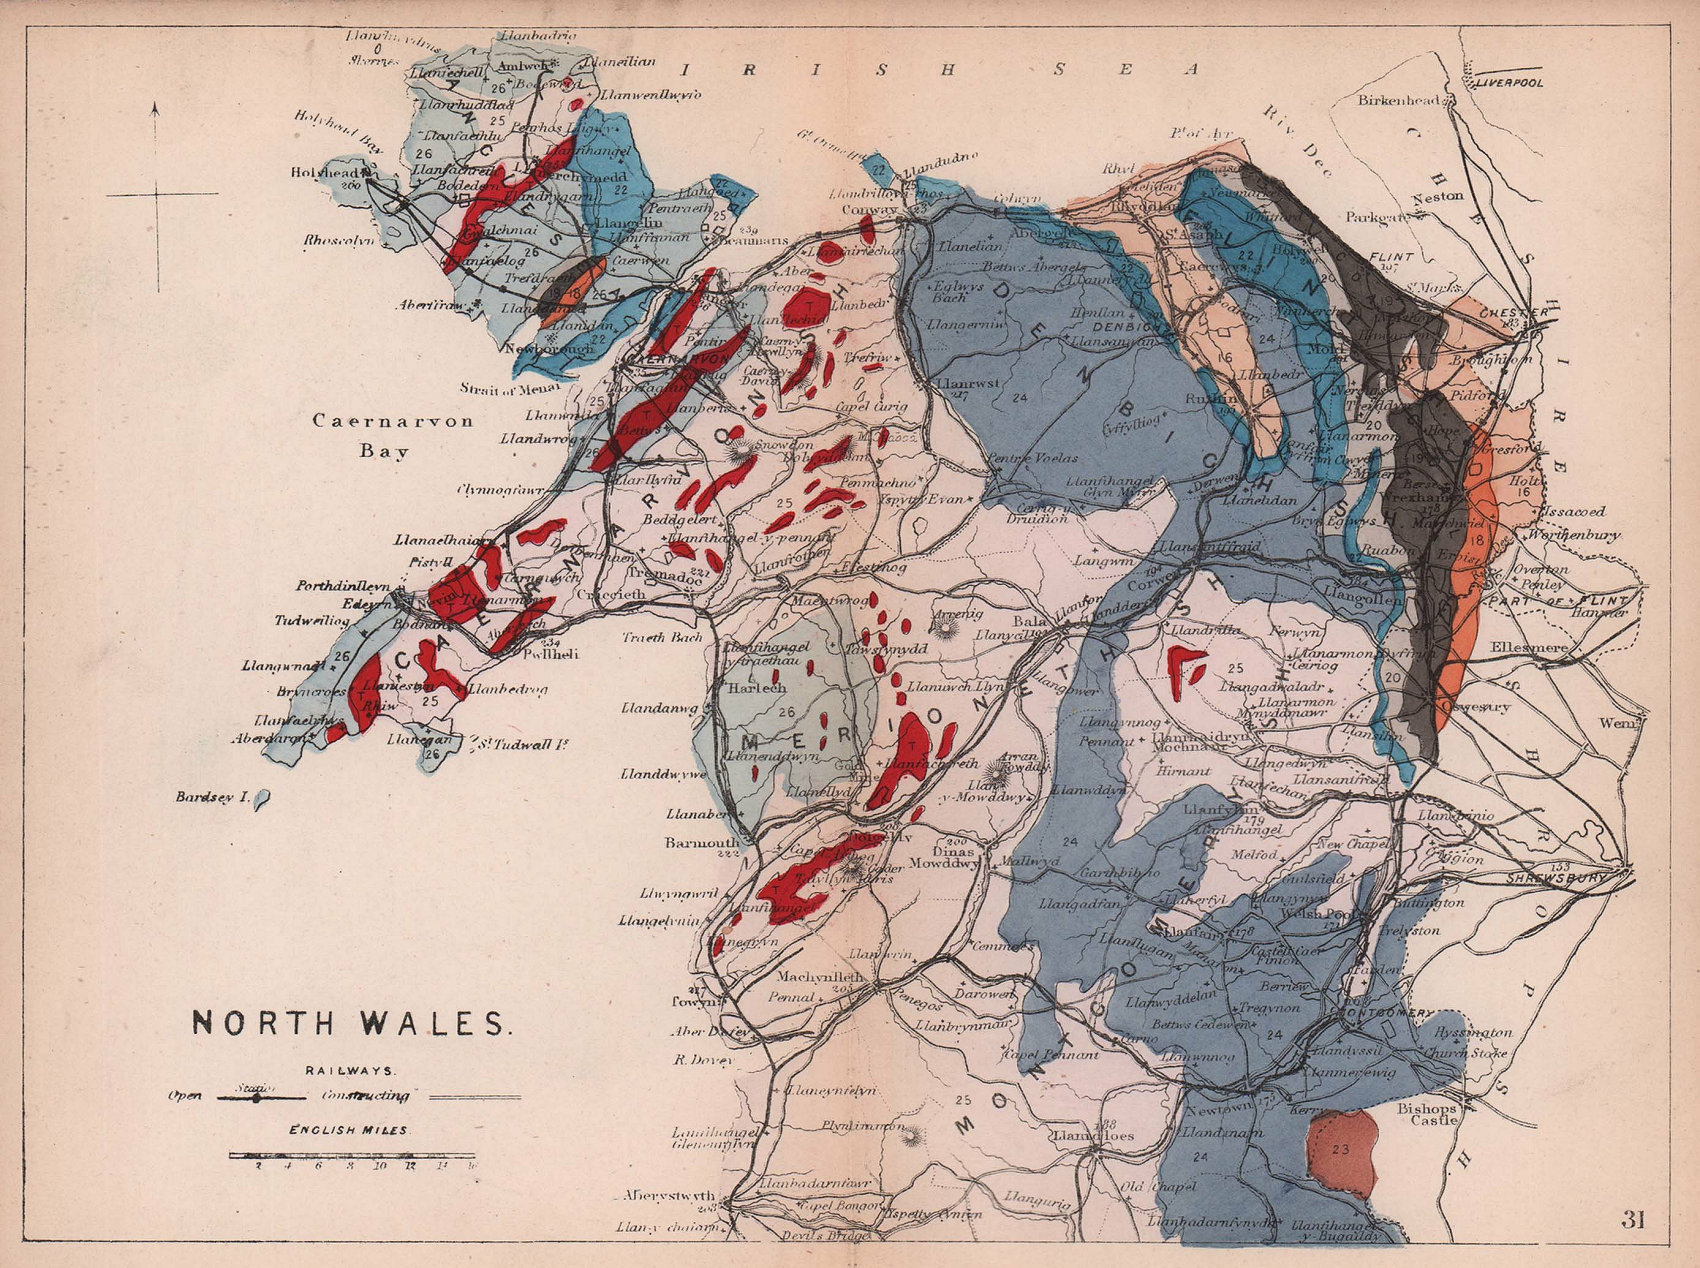 NORTH WALES antique geological map by James Reynolds 1864